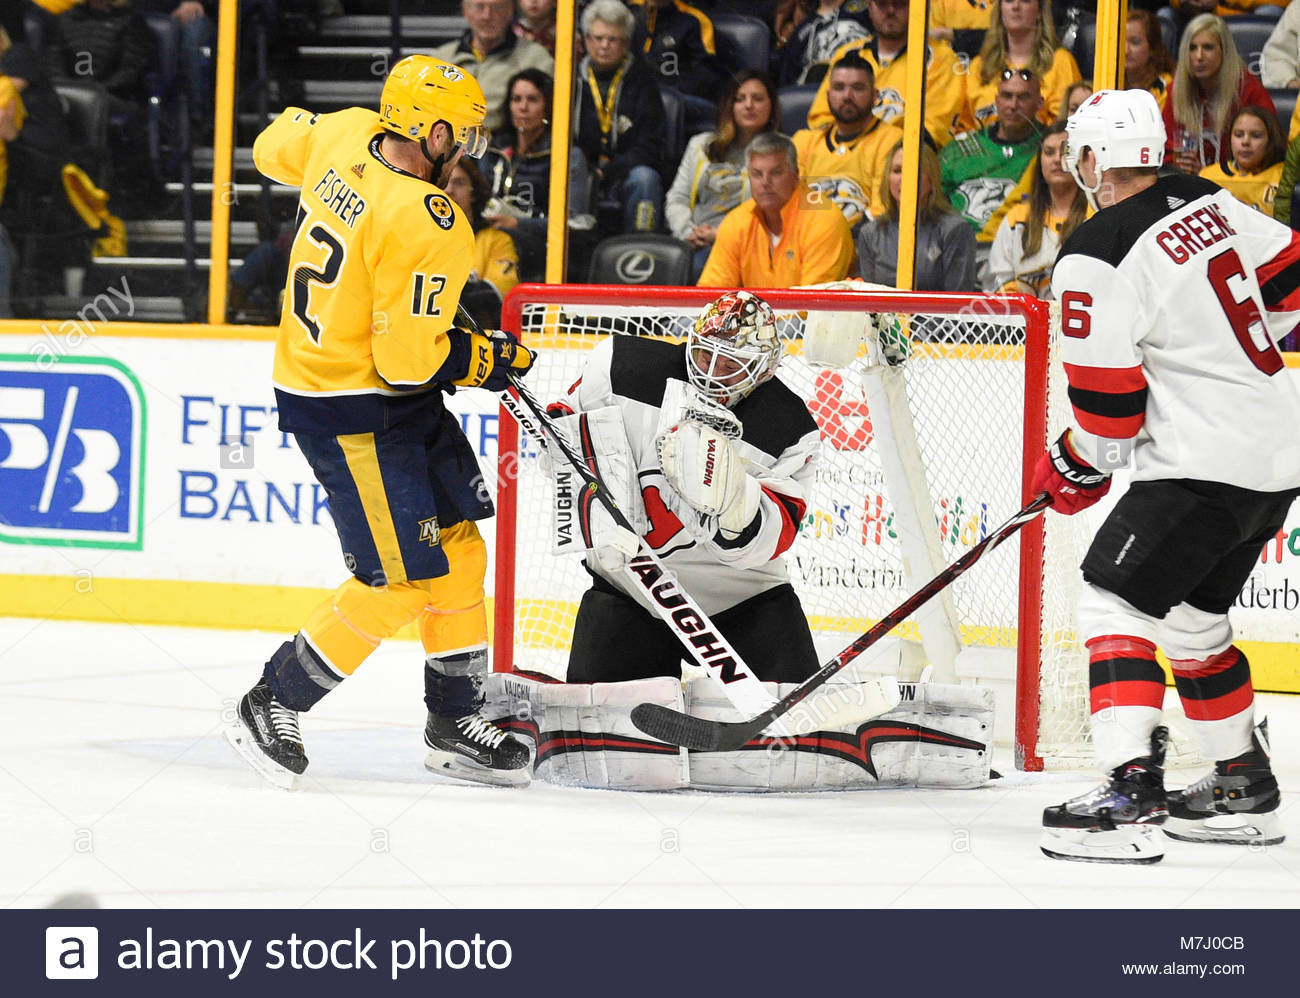 Bridgestone Arena. 10th Mar, 2018. USA Nashville Predators center Mike Fisher (12) has his shot blocked by New Jersey - Stock Image